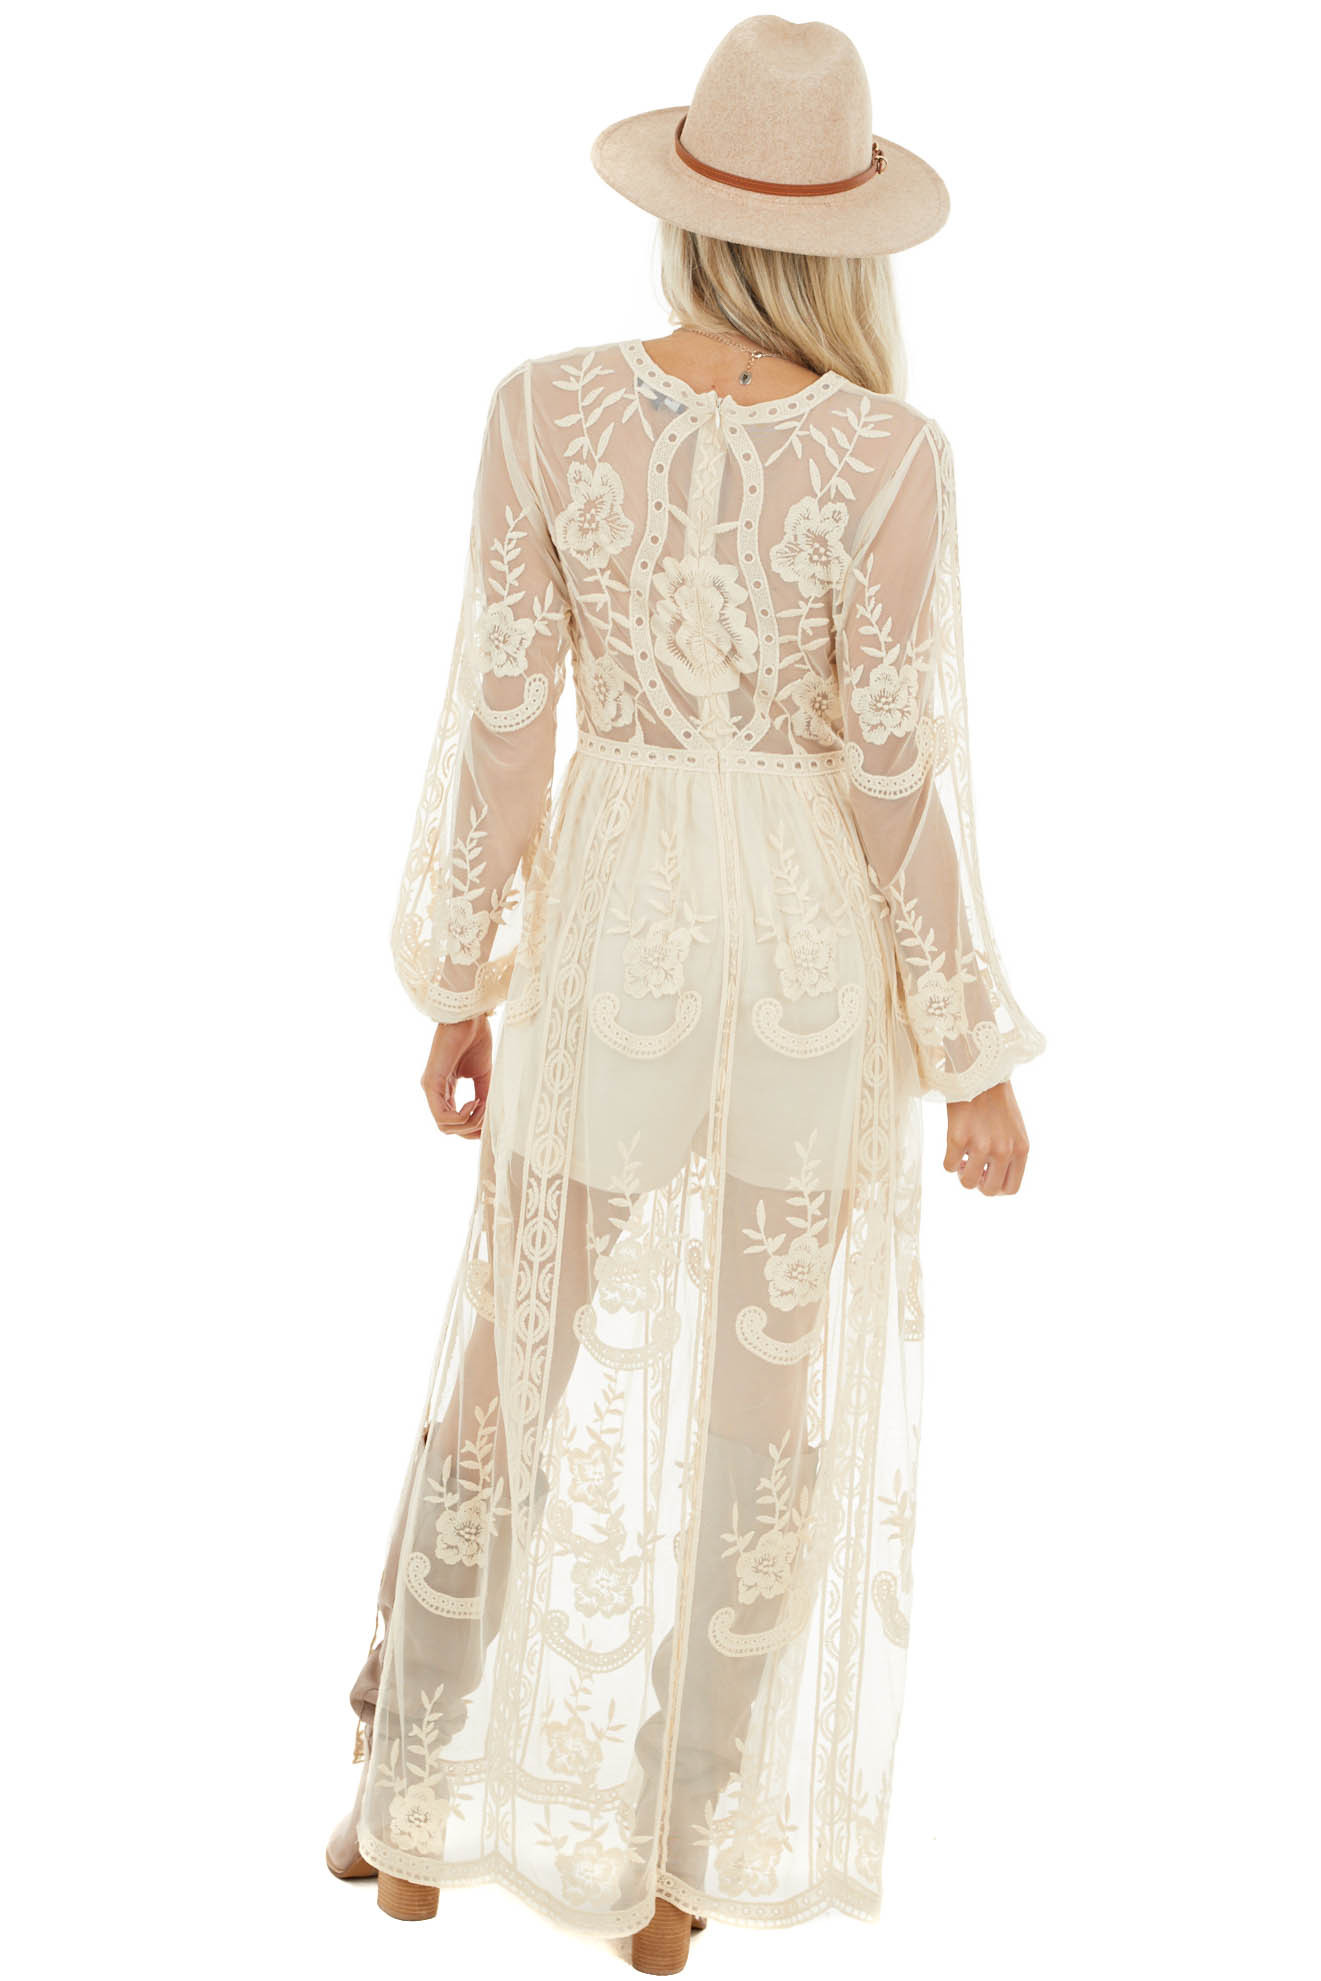 Cream Lace Long Sleeve Romper with Maxi Overlay